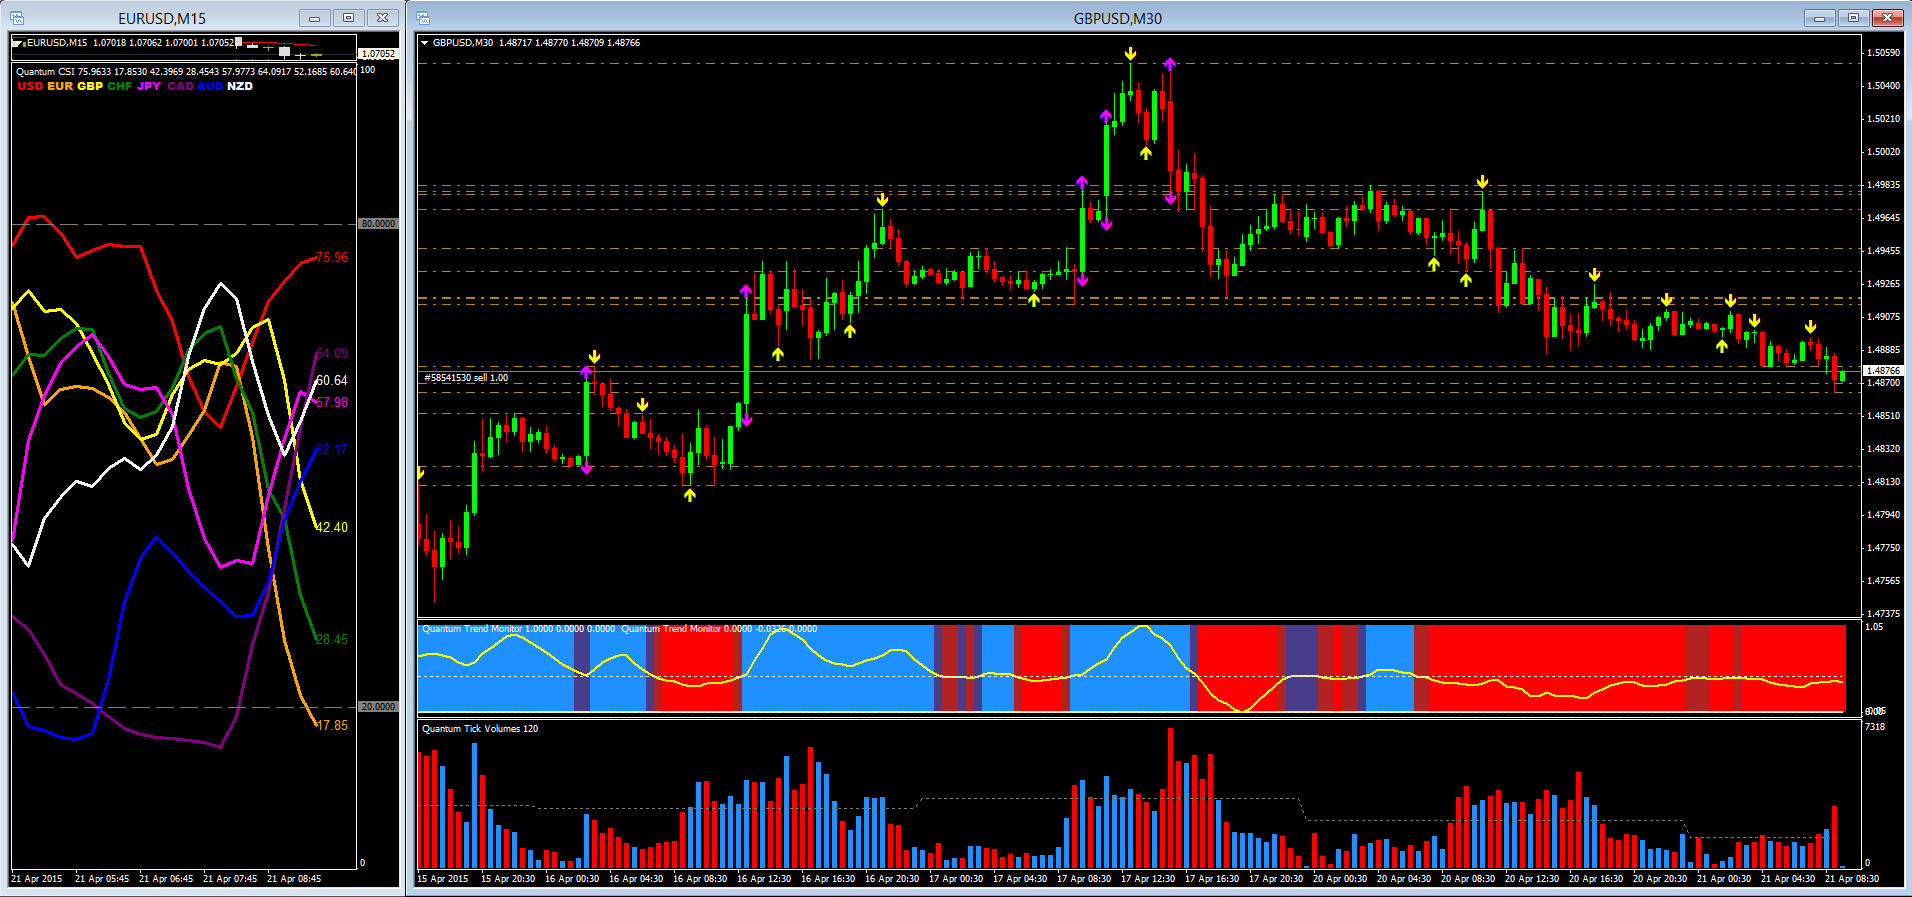 GBP/USD - Currency strength indicator &30 minute chart